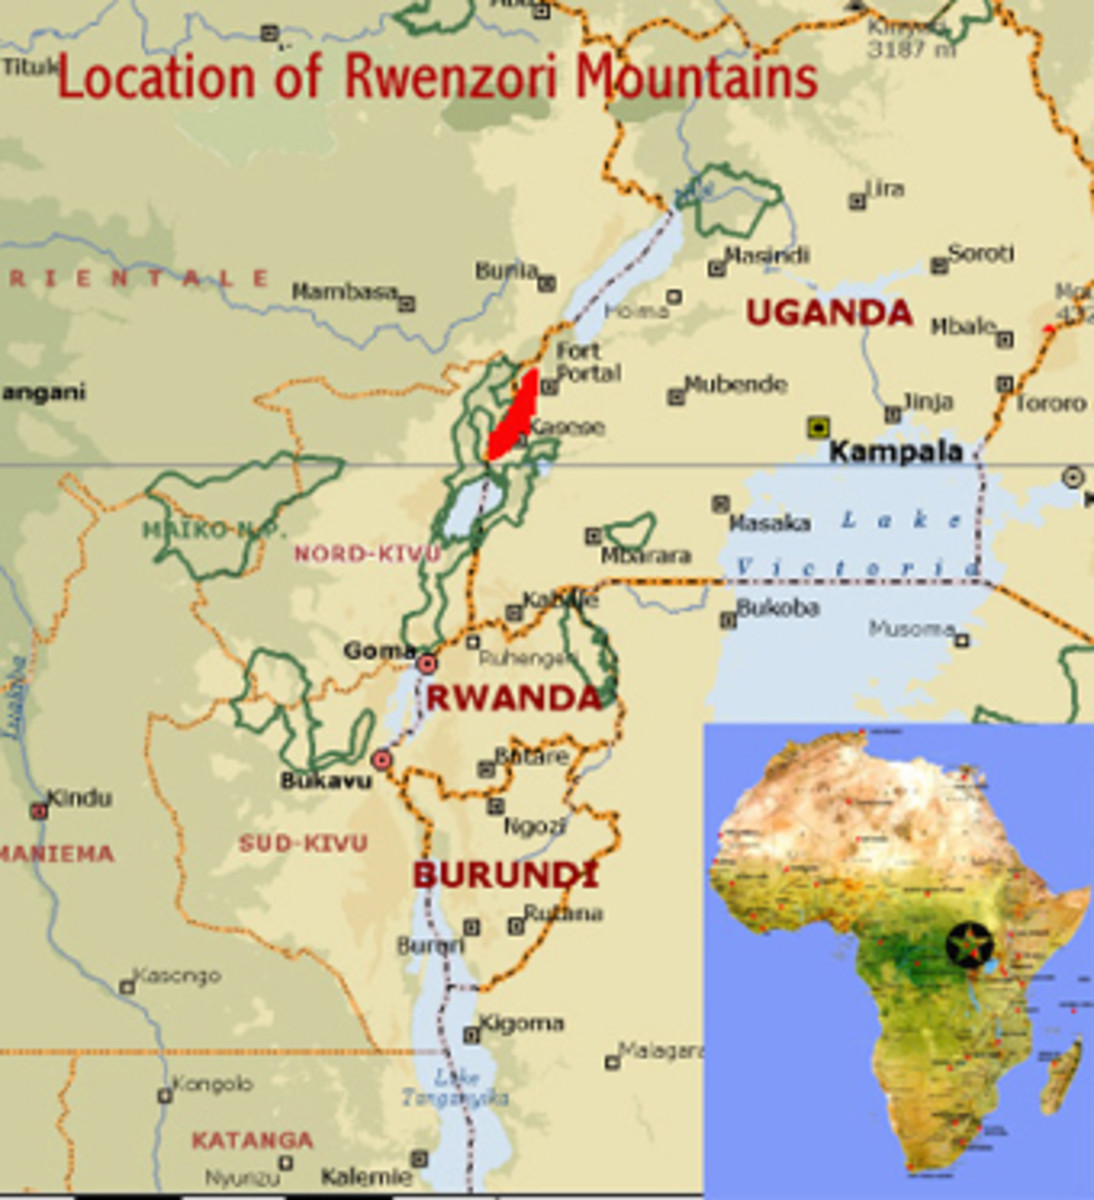 he Rwenzori Mountains are steep, rugged and very wet. They owe their origins to thrusting of the earth's crust associated with the creation of the Albertine Rift, which makes them geologically quite different to the other high East African mountains